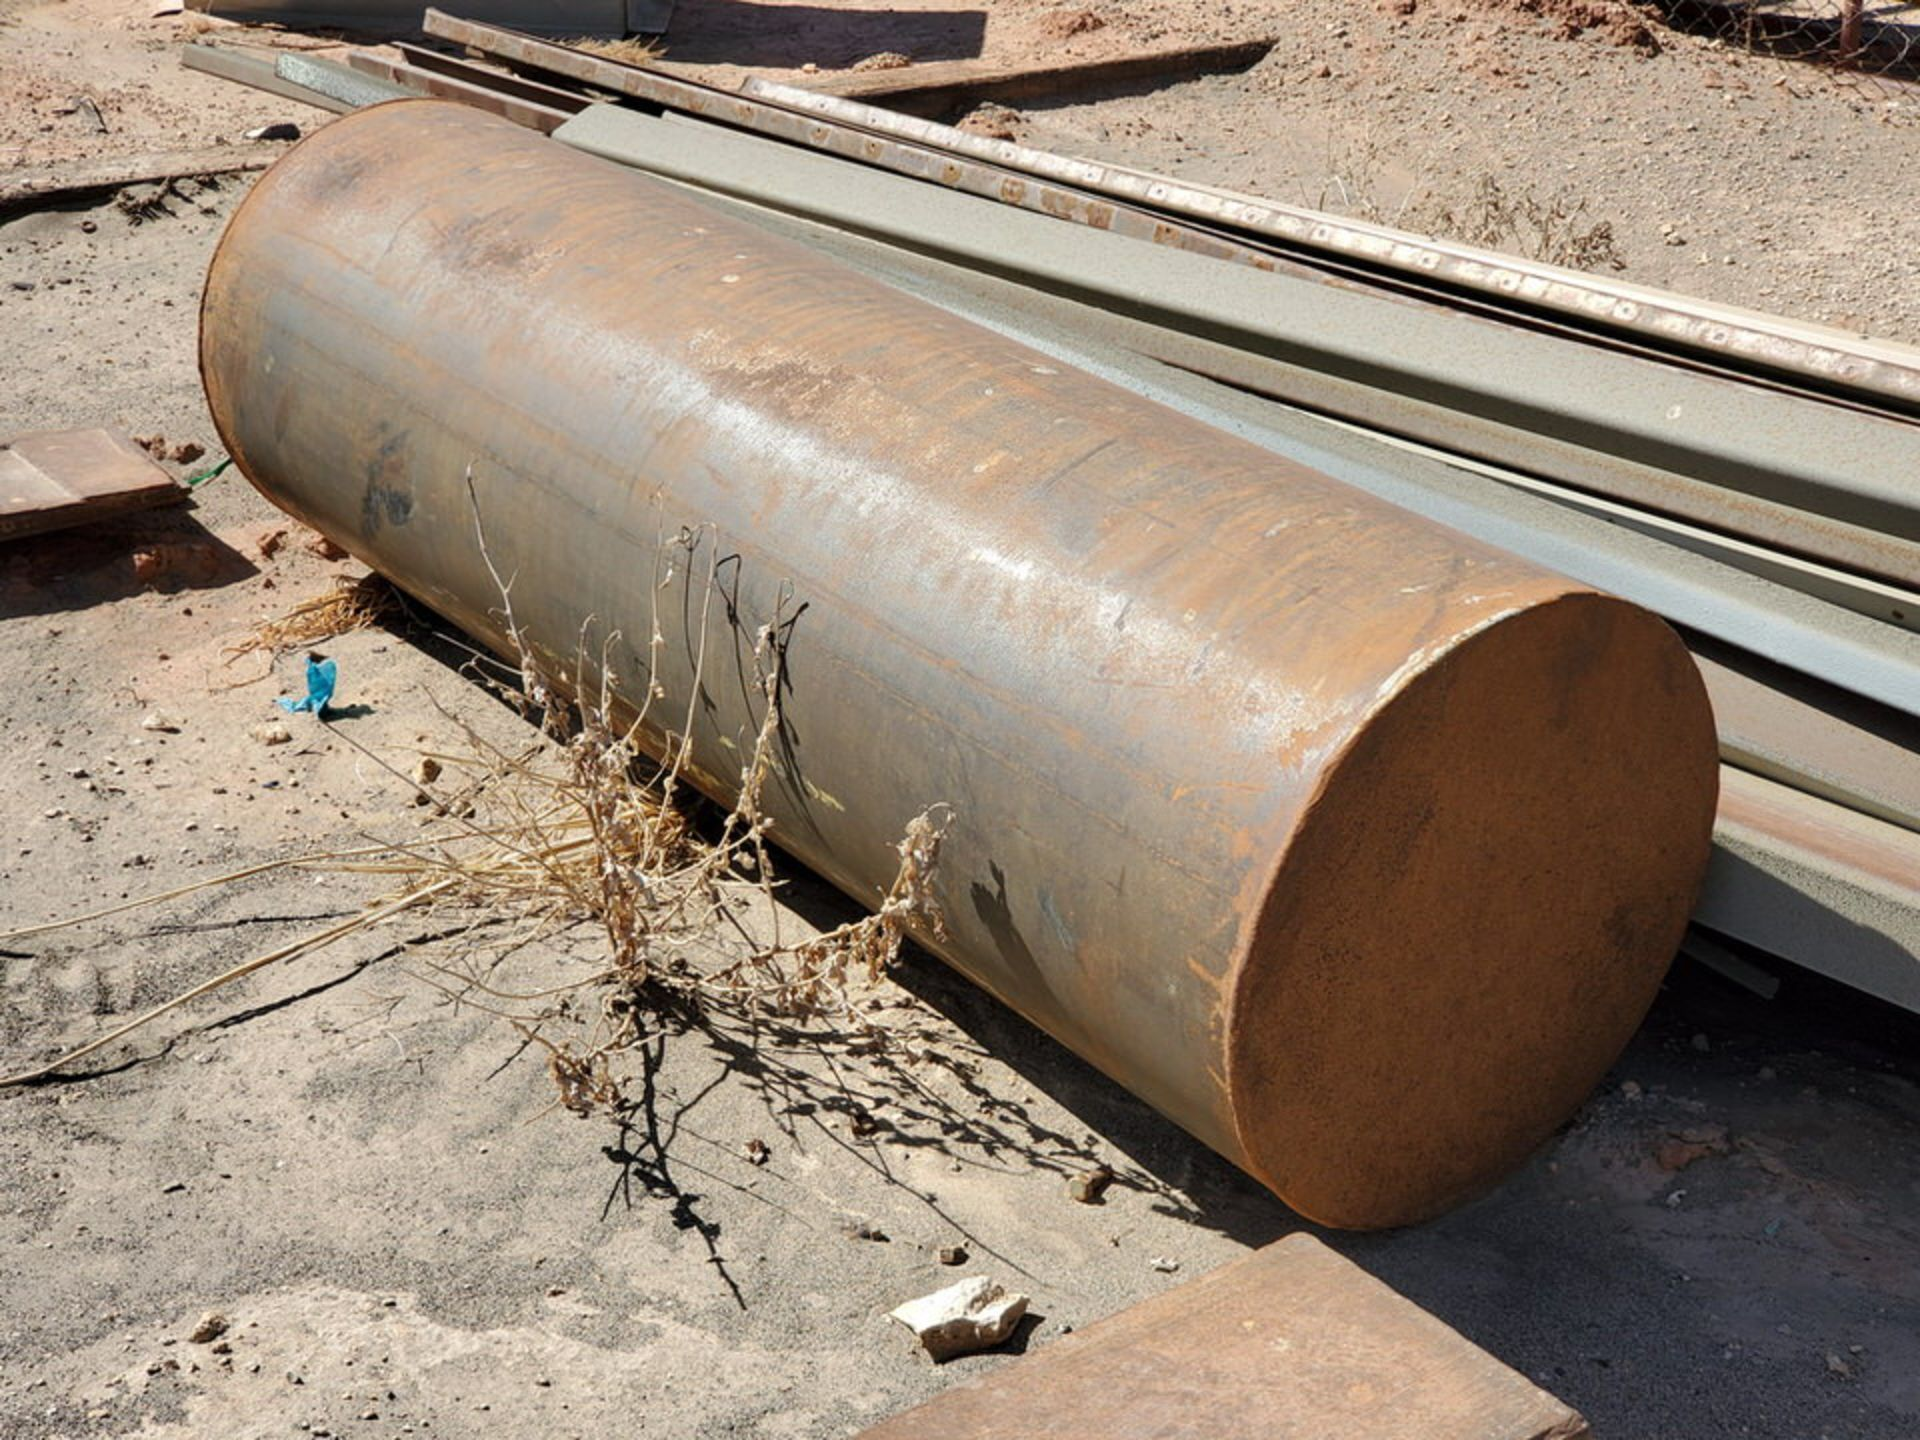 Assorted Material To Include But Not Limited To: Roller, Siding, Channel, Sq. Tubing, etc. - Image 10 of 10